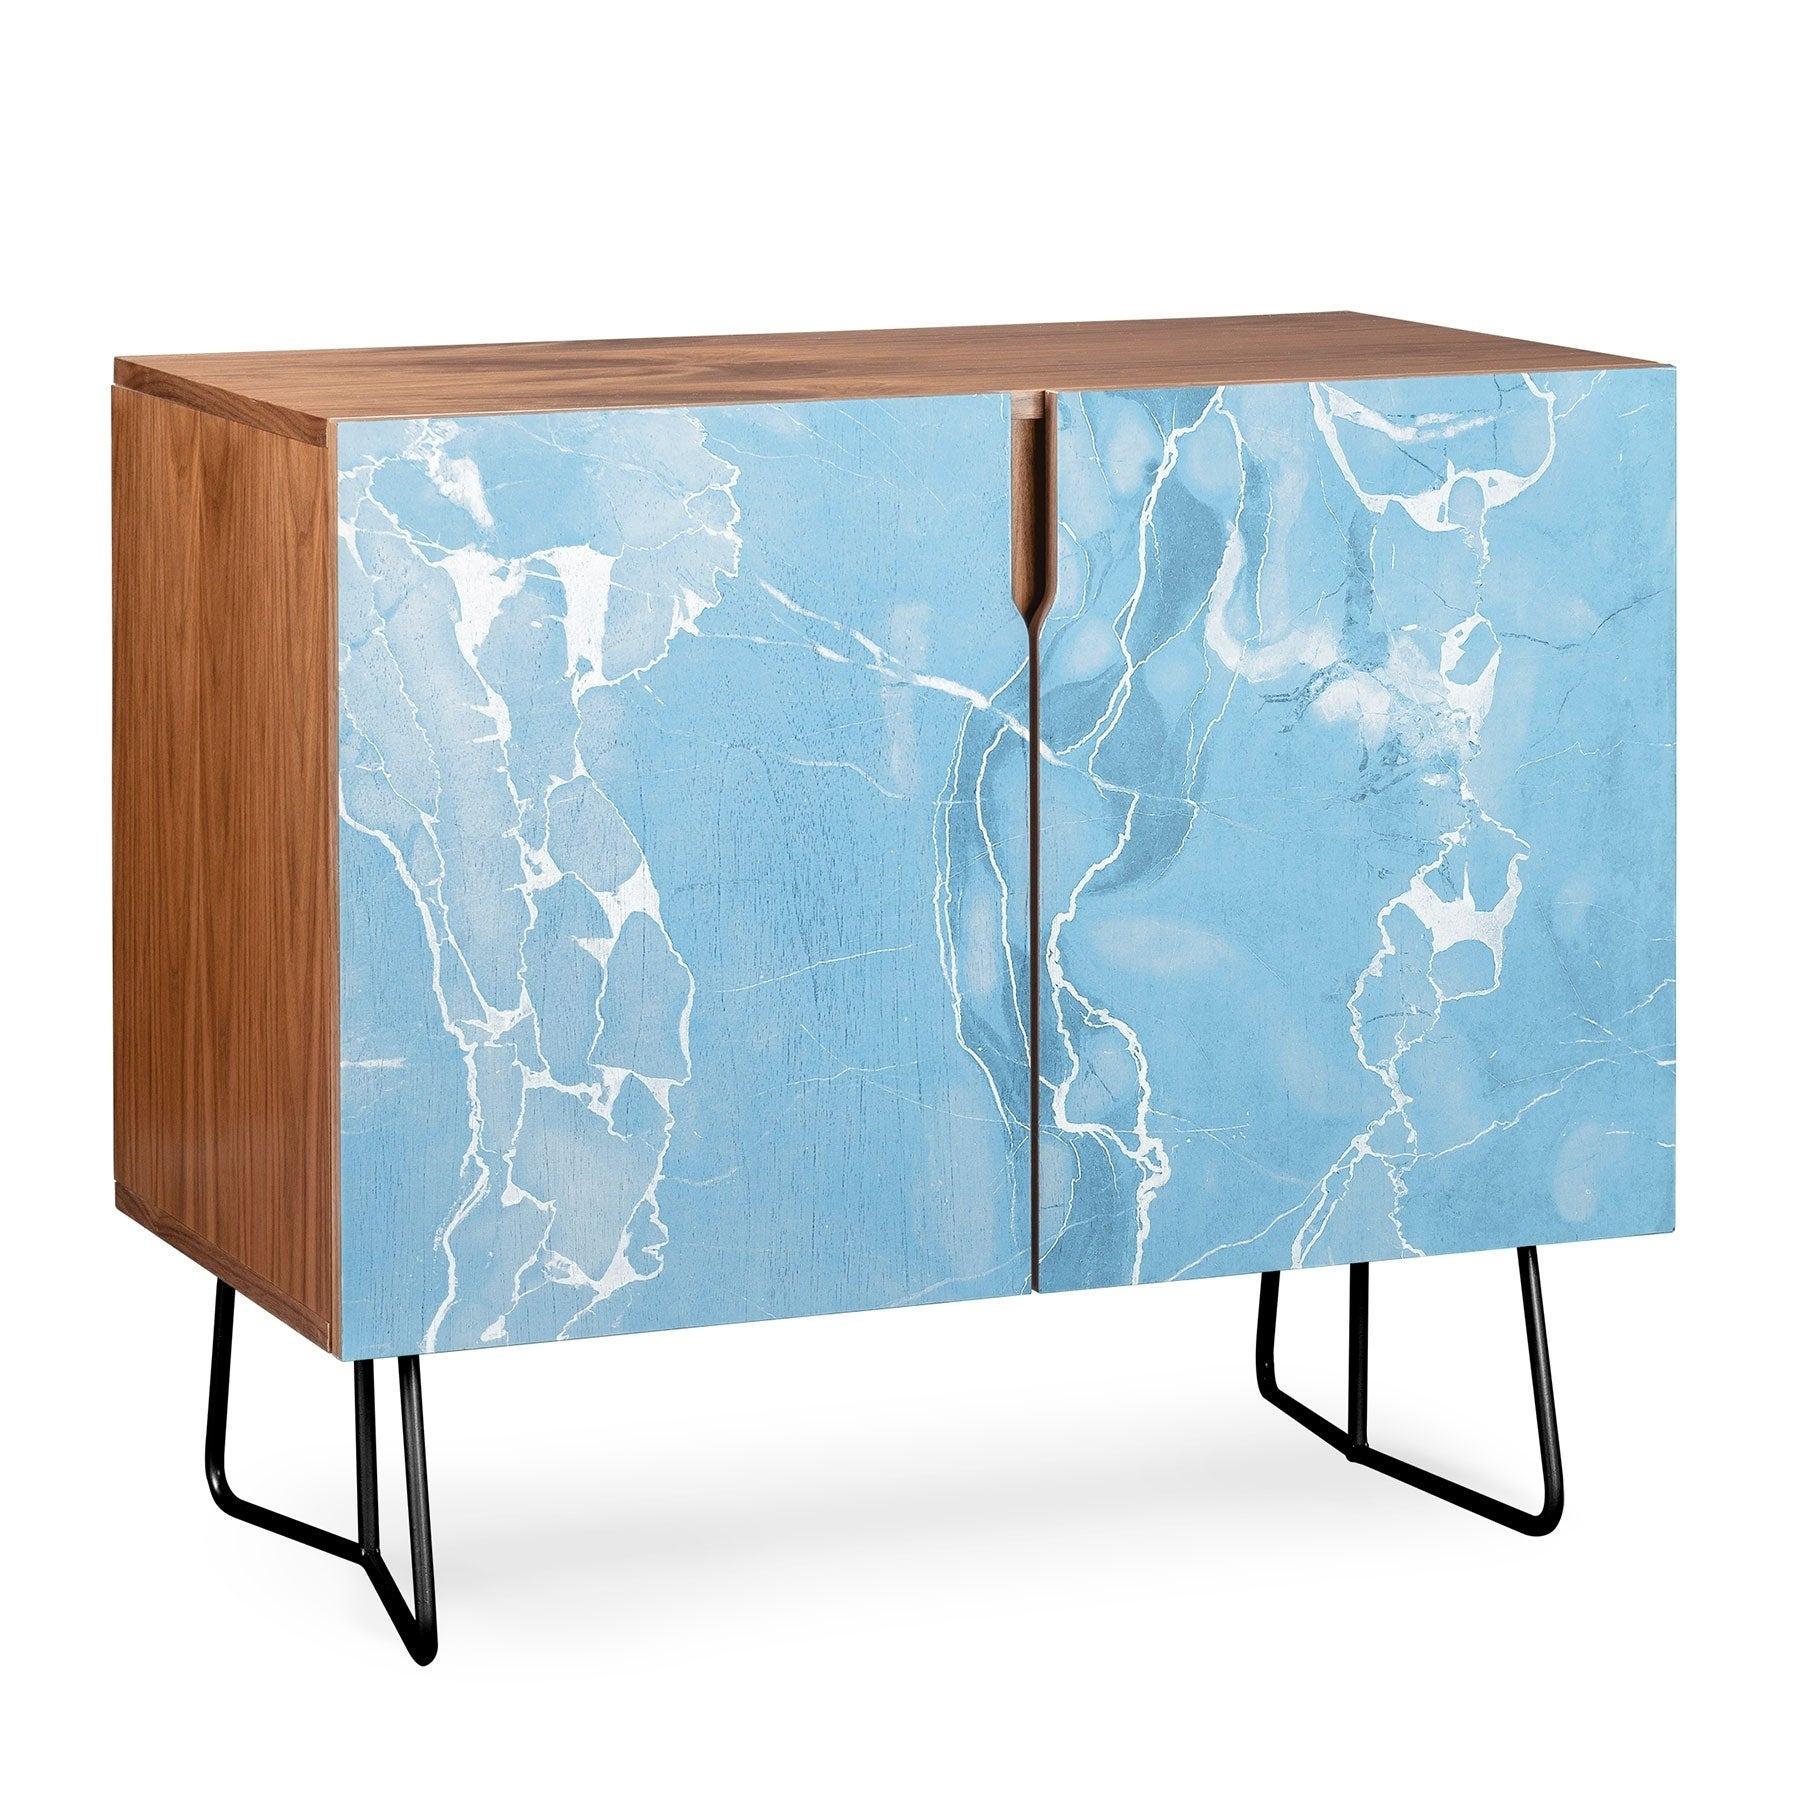 Deny Designs Blue Sky Marble Credenza (Birch Or Walnut, 2 Leg Options) Intended For Ocean Marble Credenzas (Photo 3 of 30)